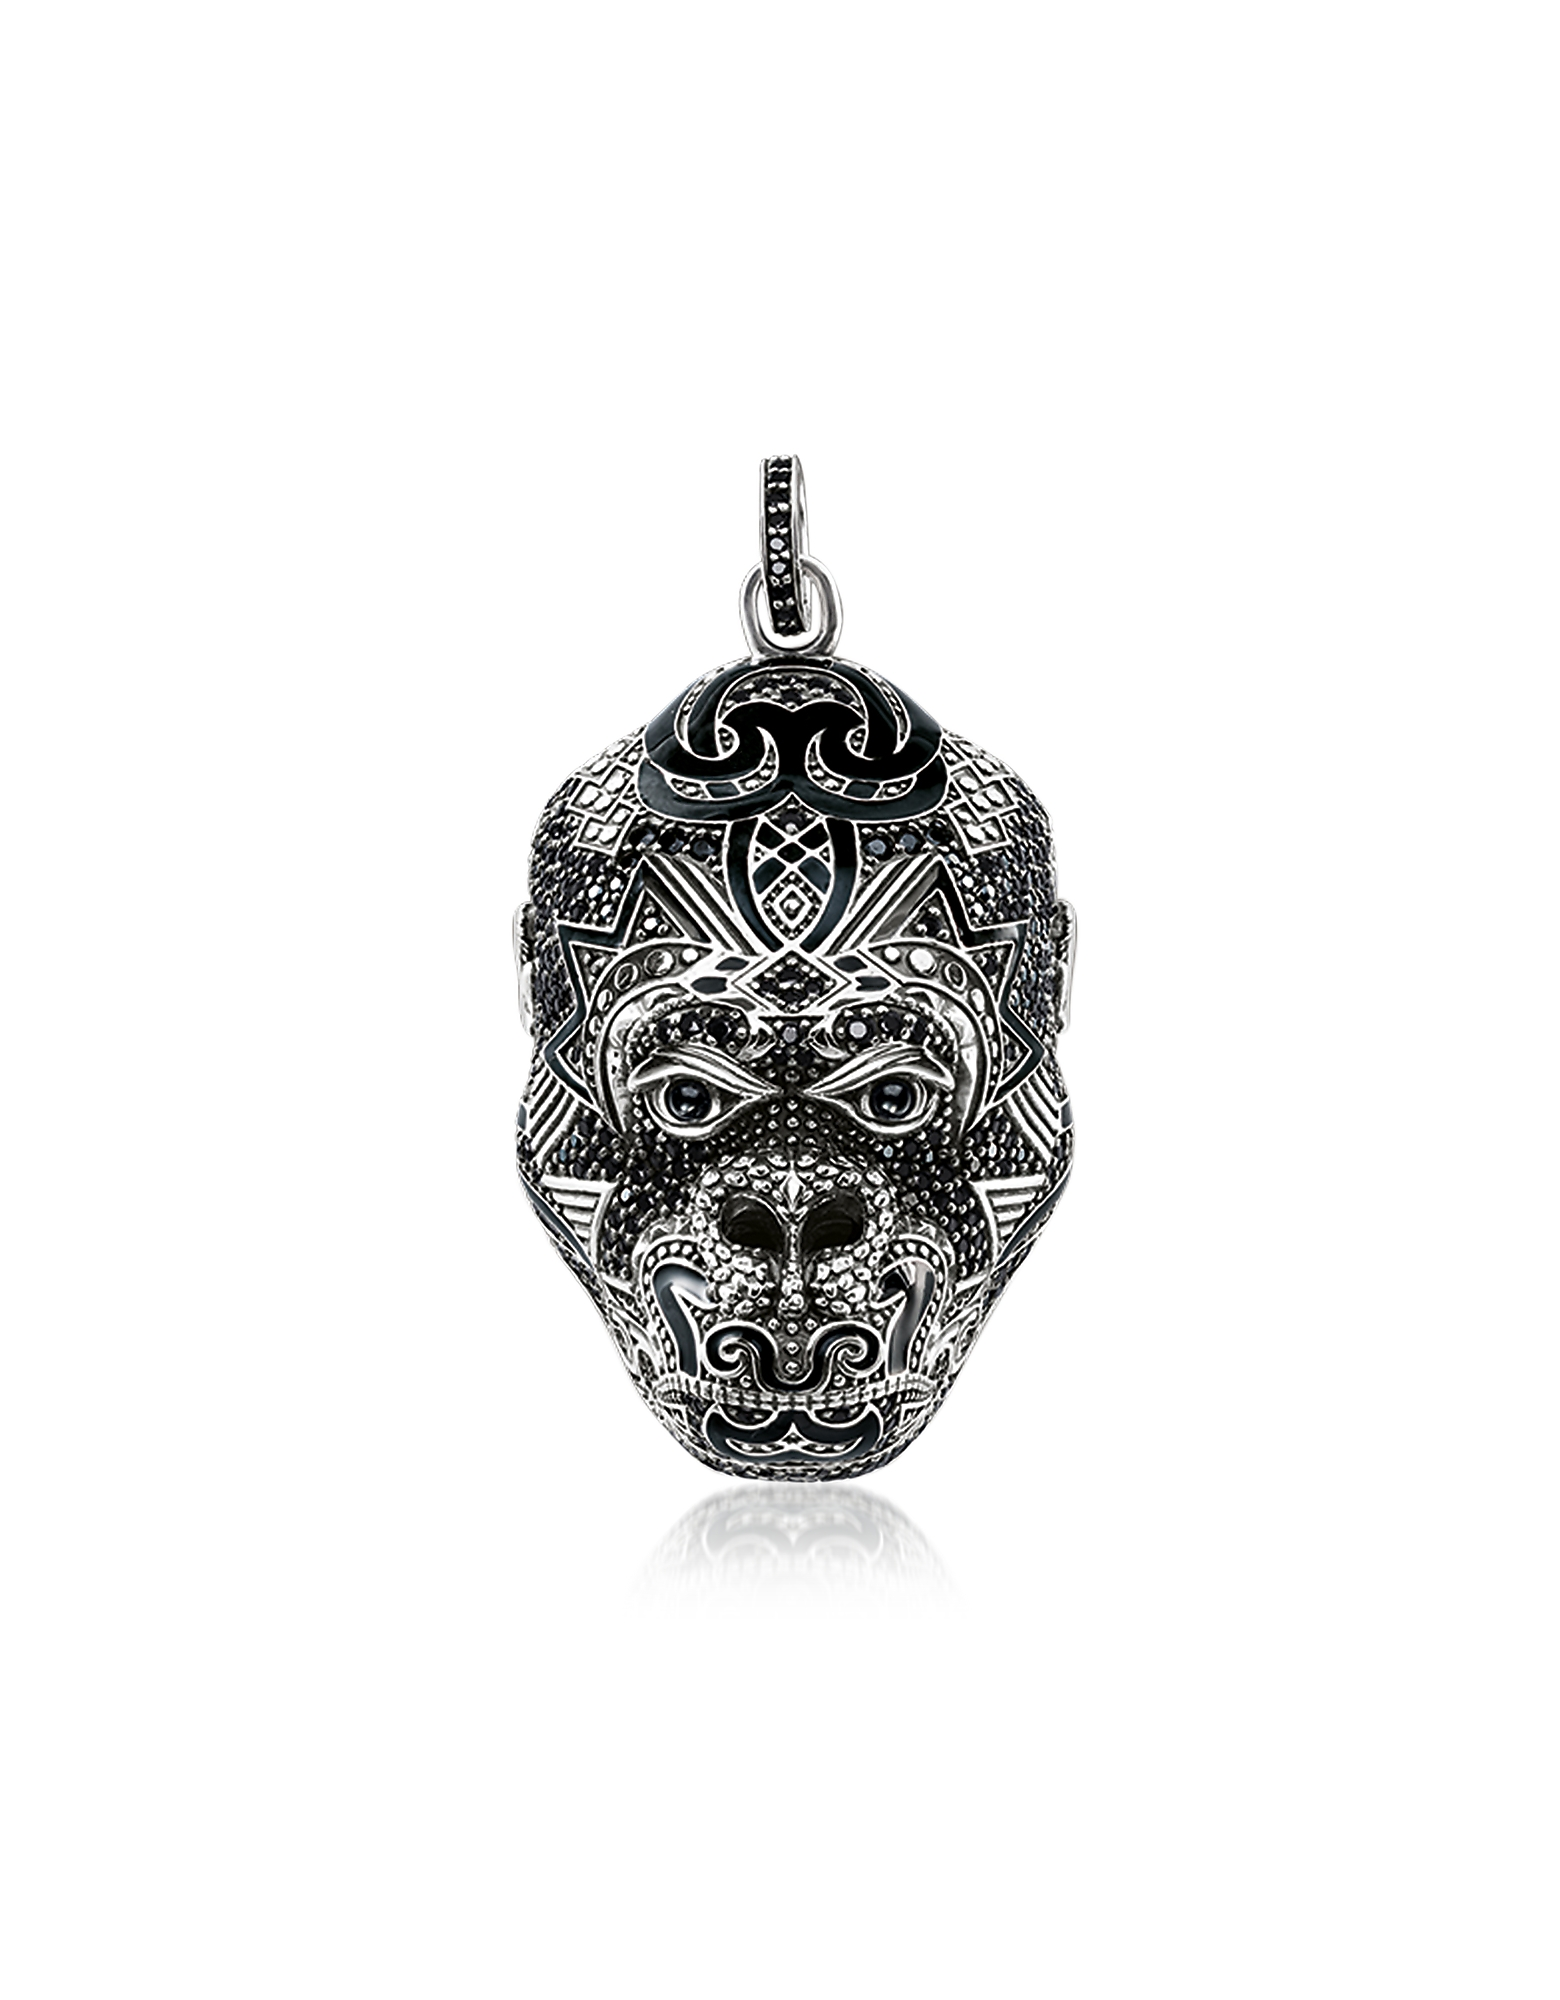 Thomas Sabo Men's Necklaces, Blackened Sterling Silver Monkey God Pendant w/Black Zirconia and Onyx